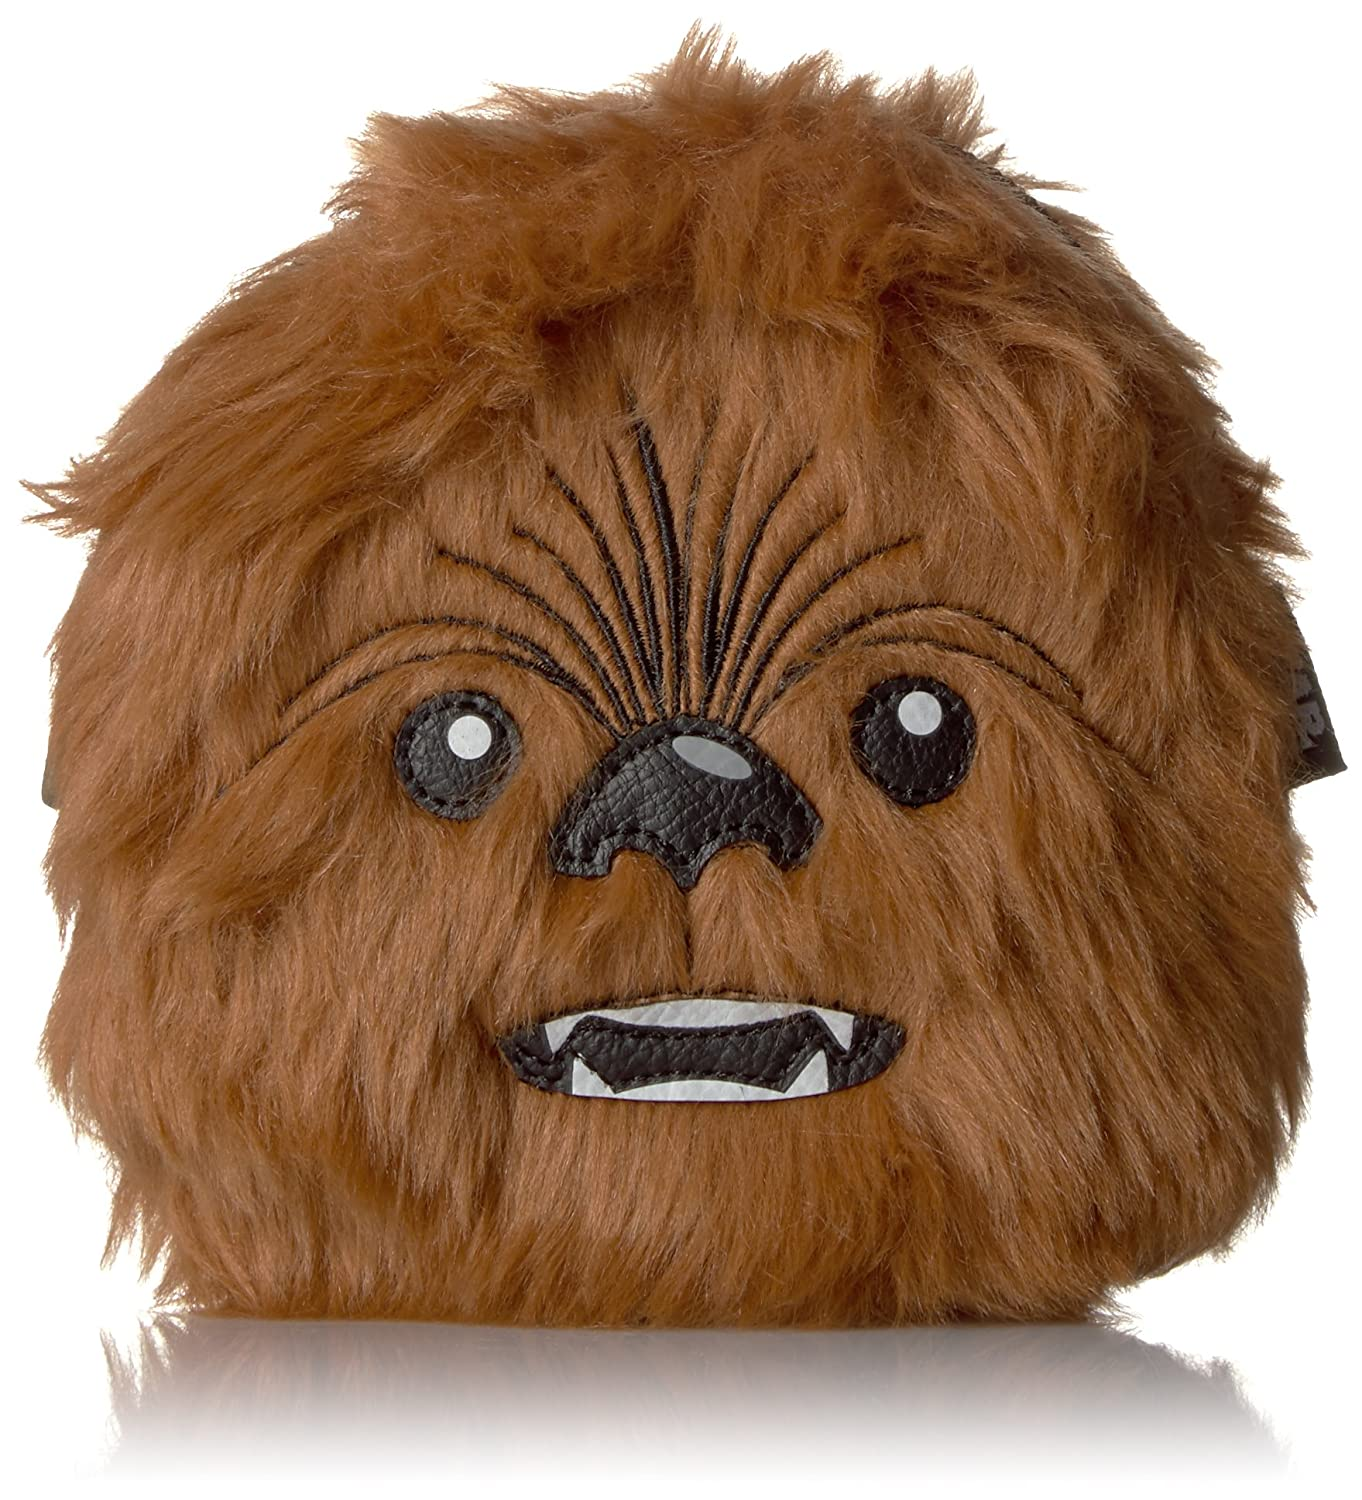 Loungefly Women's Star Wars Chewbacca Bag Coin Purse, Brown, One Size STCB0060